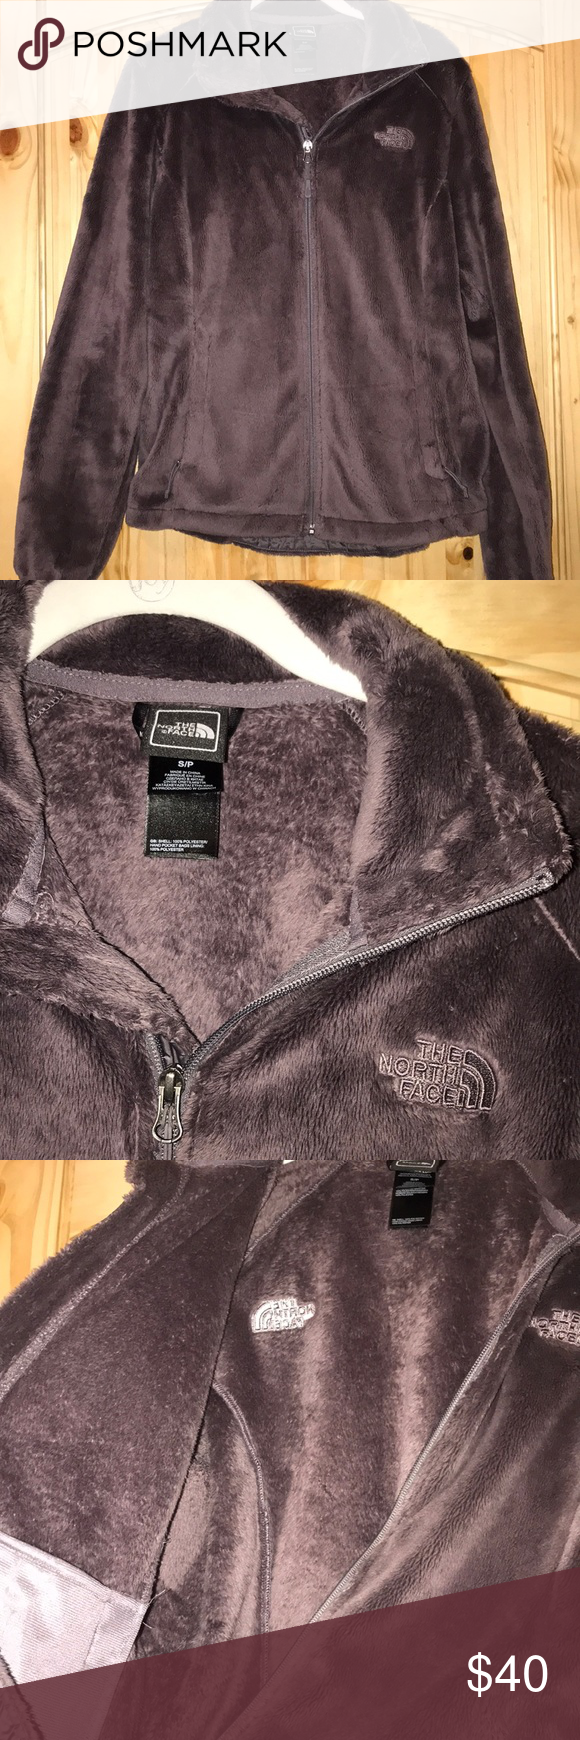 North Face Fuzzy Jacket Grey North Face Jacket Clothes Design Fashion [ 1740 x 580 Pixel ]